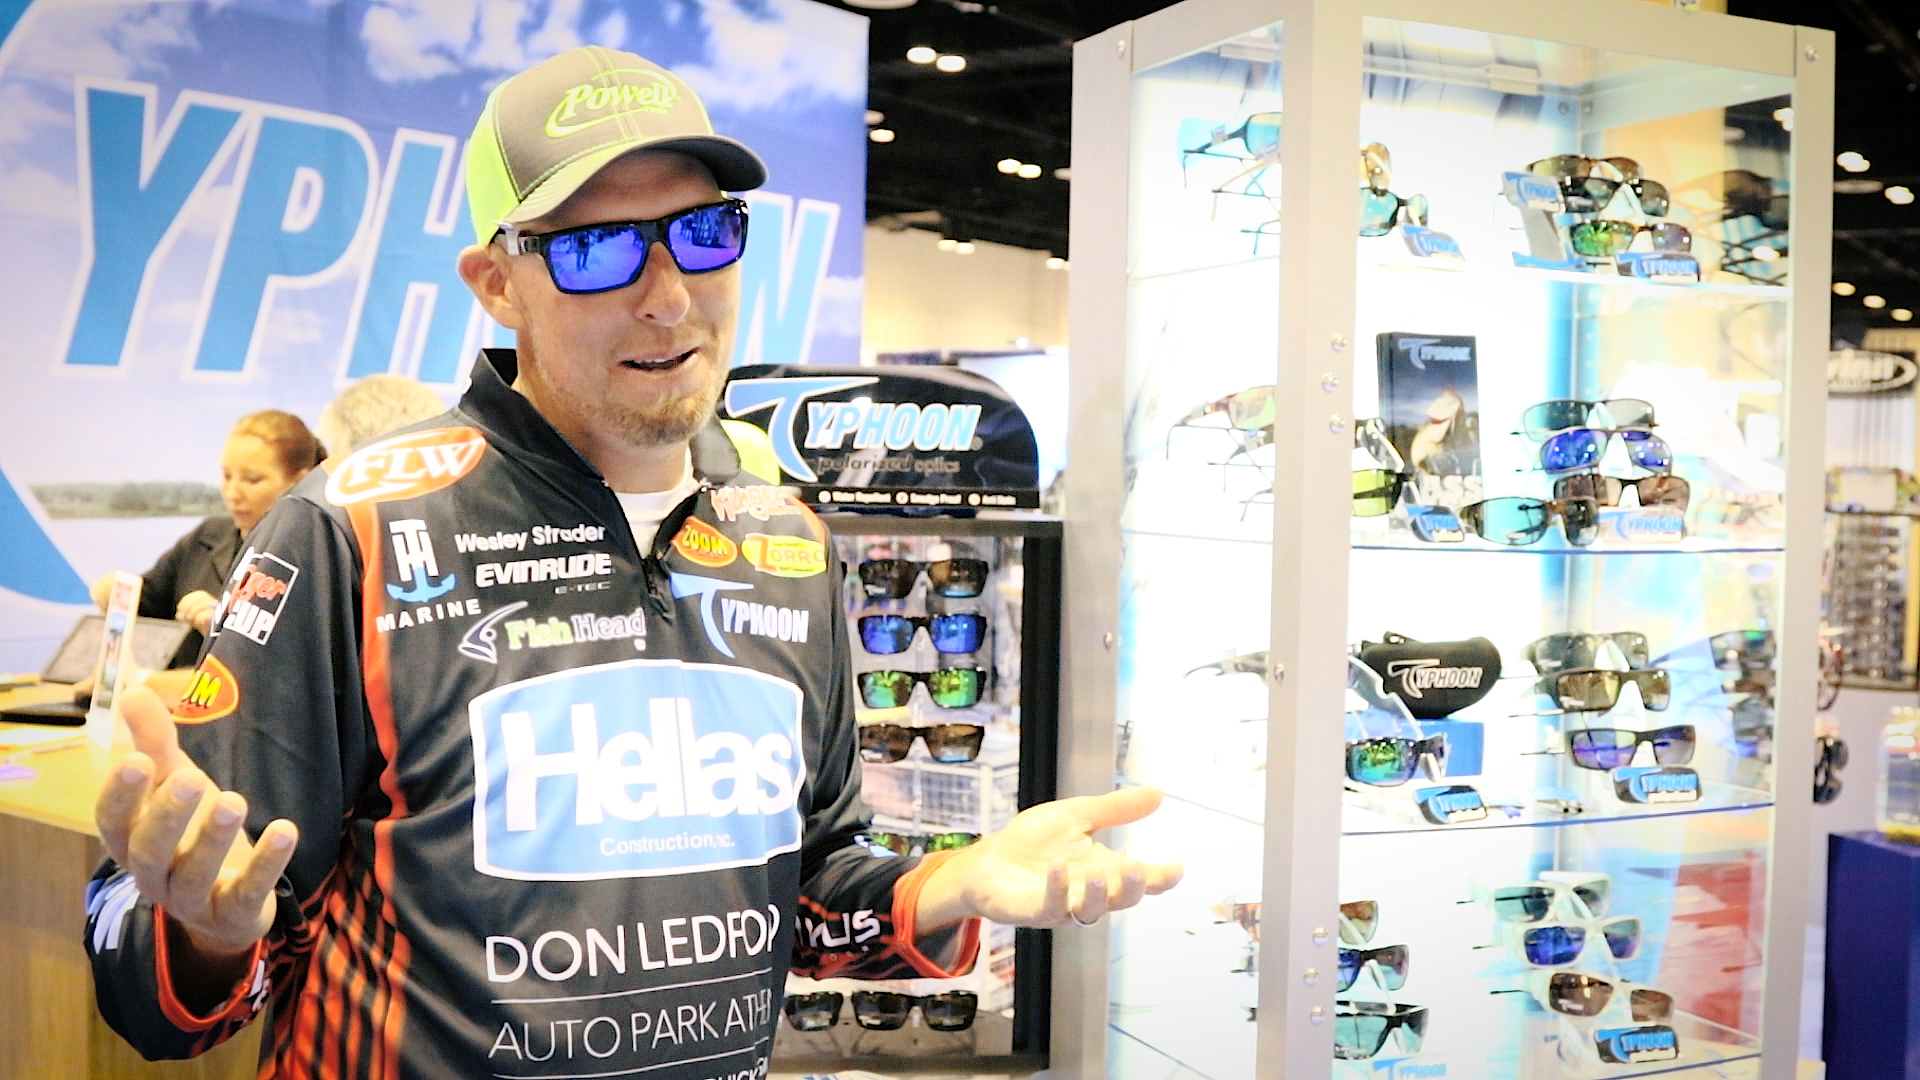 ICAST 2015 - Typhoon Optics with Wesley Strader